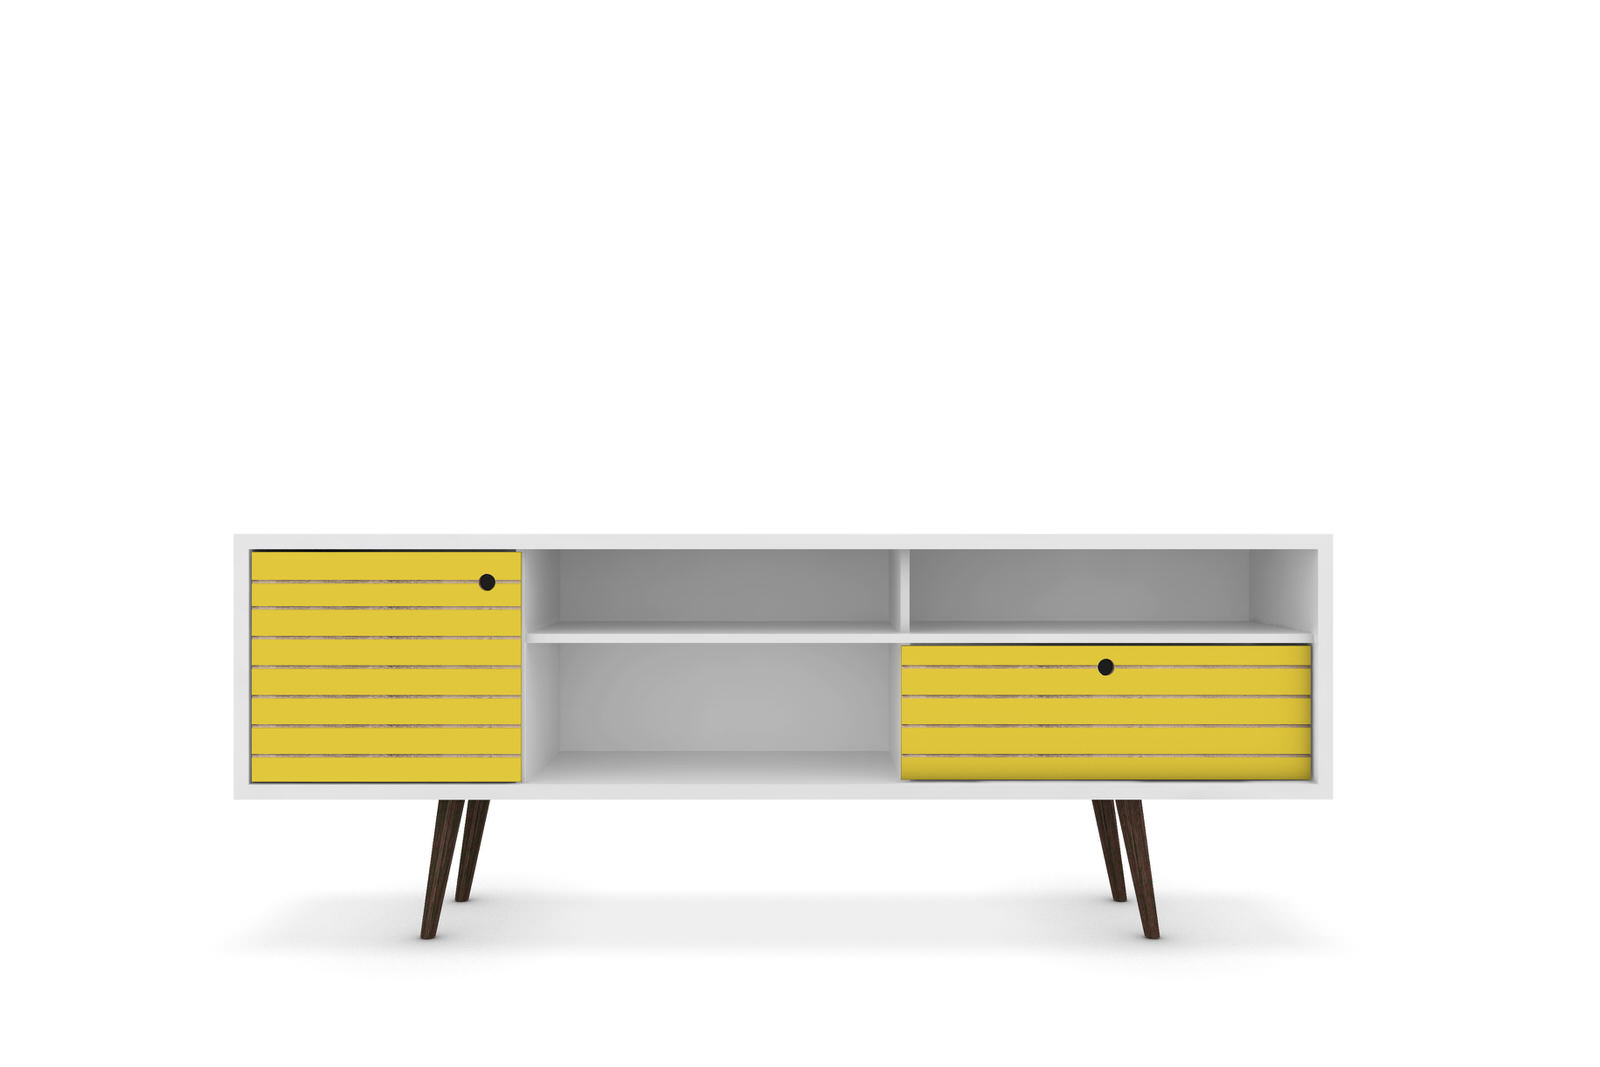 Liberty White U0026 Yellow 70.86 Inch Mid Century   Modern TV Stand W/ 4  Shelving Spaces, 1 Drawer U0026 Solid Wood Legs By Manhattan Co